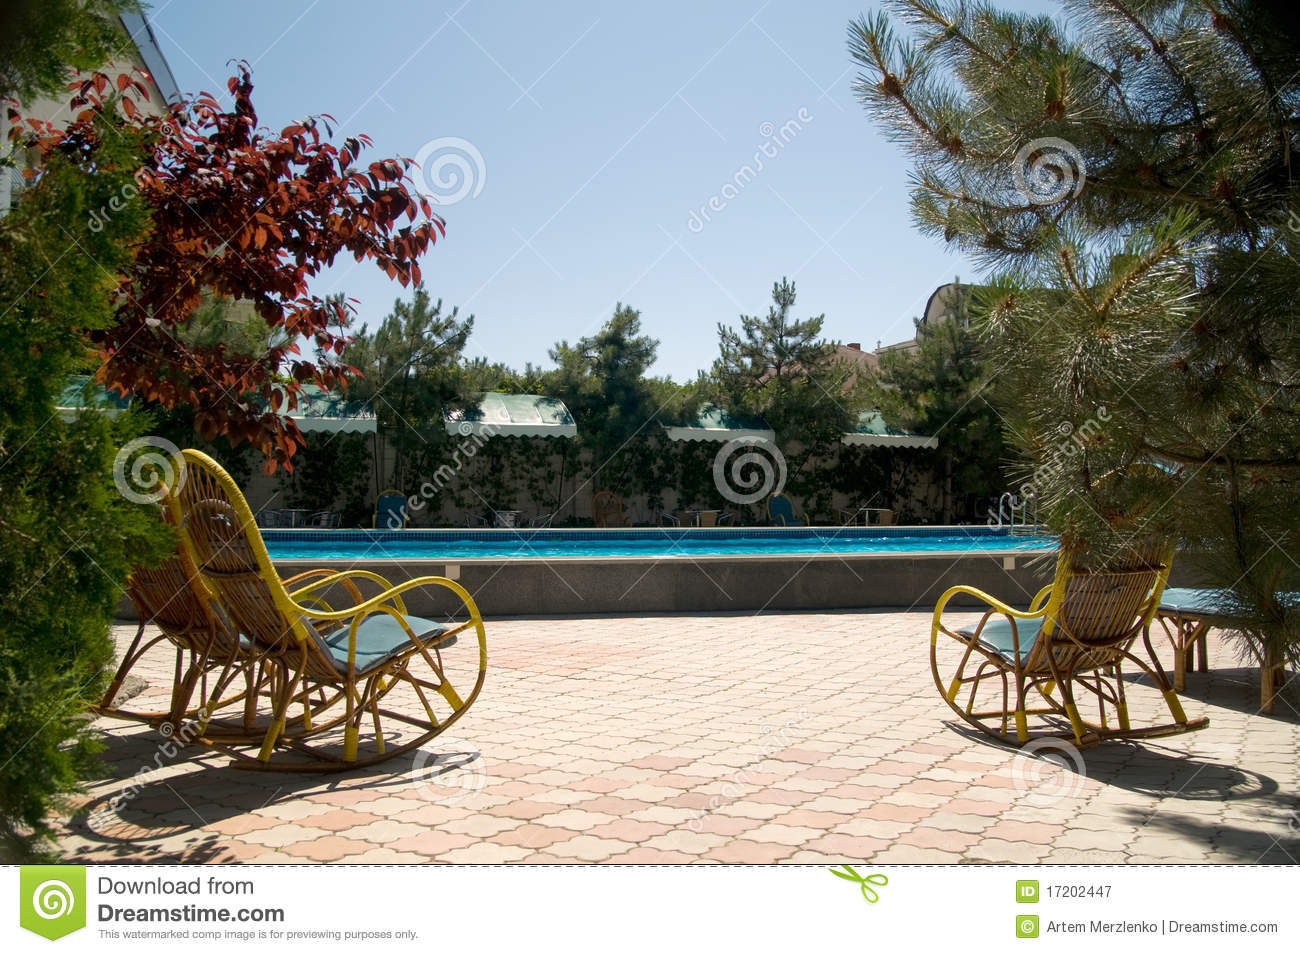 Safety rails by a swimming pool royalty free stock photography image 17202447 Where can i buy a swimming pool near me